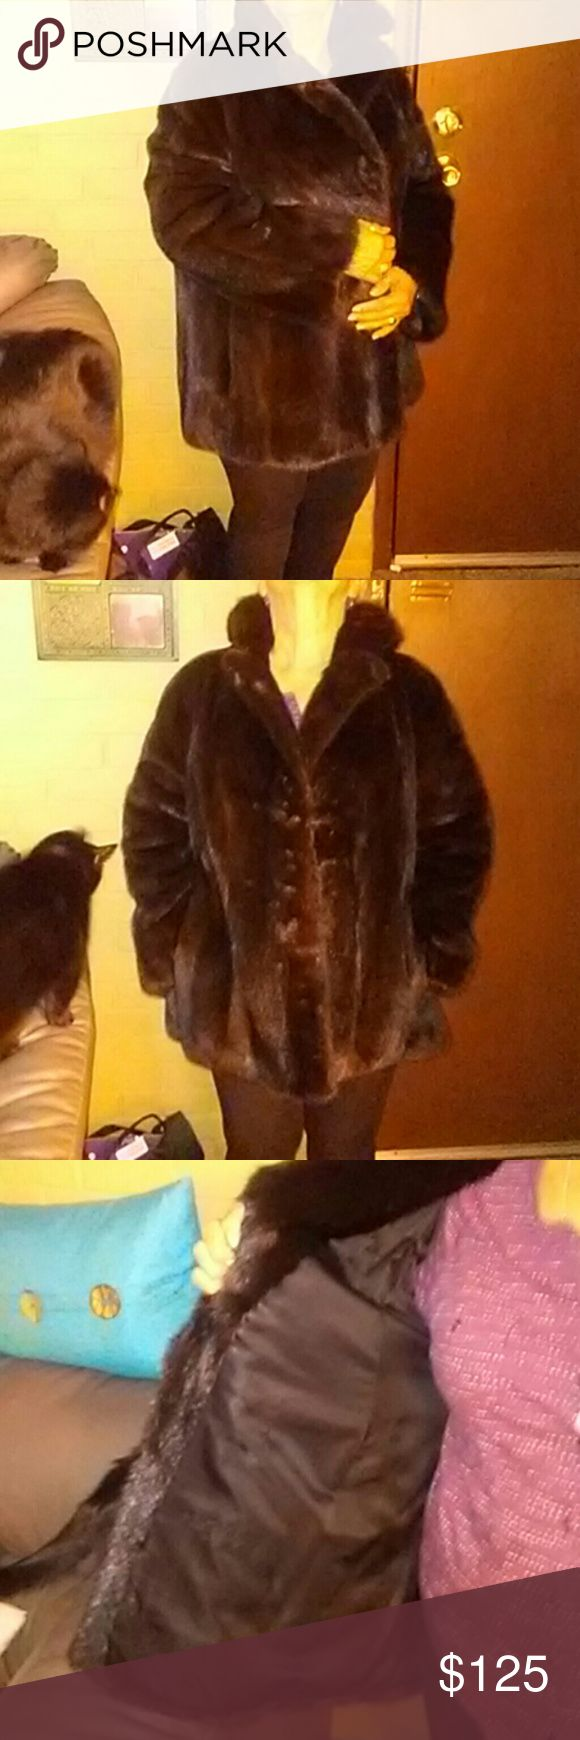 Genuine Kotsovos Mink Coat This is the real deal. Beautiful Brown Mink Coat. Kotsovos is a high end boutique in Cincinnati. This is a Med. Message me with any questions. This is a steal and wont last long! Price is negotiable Jackets & Coats